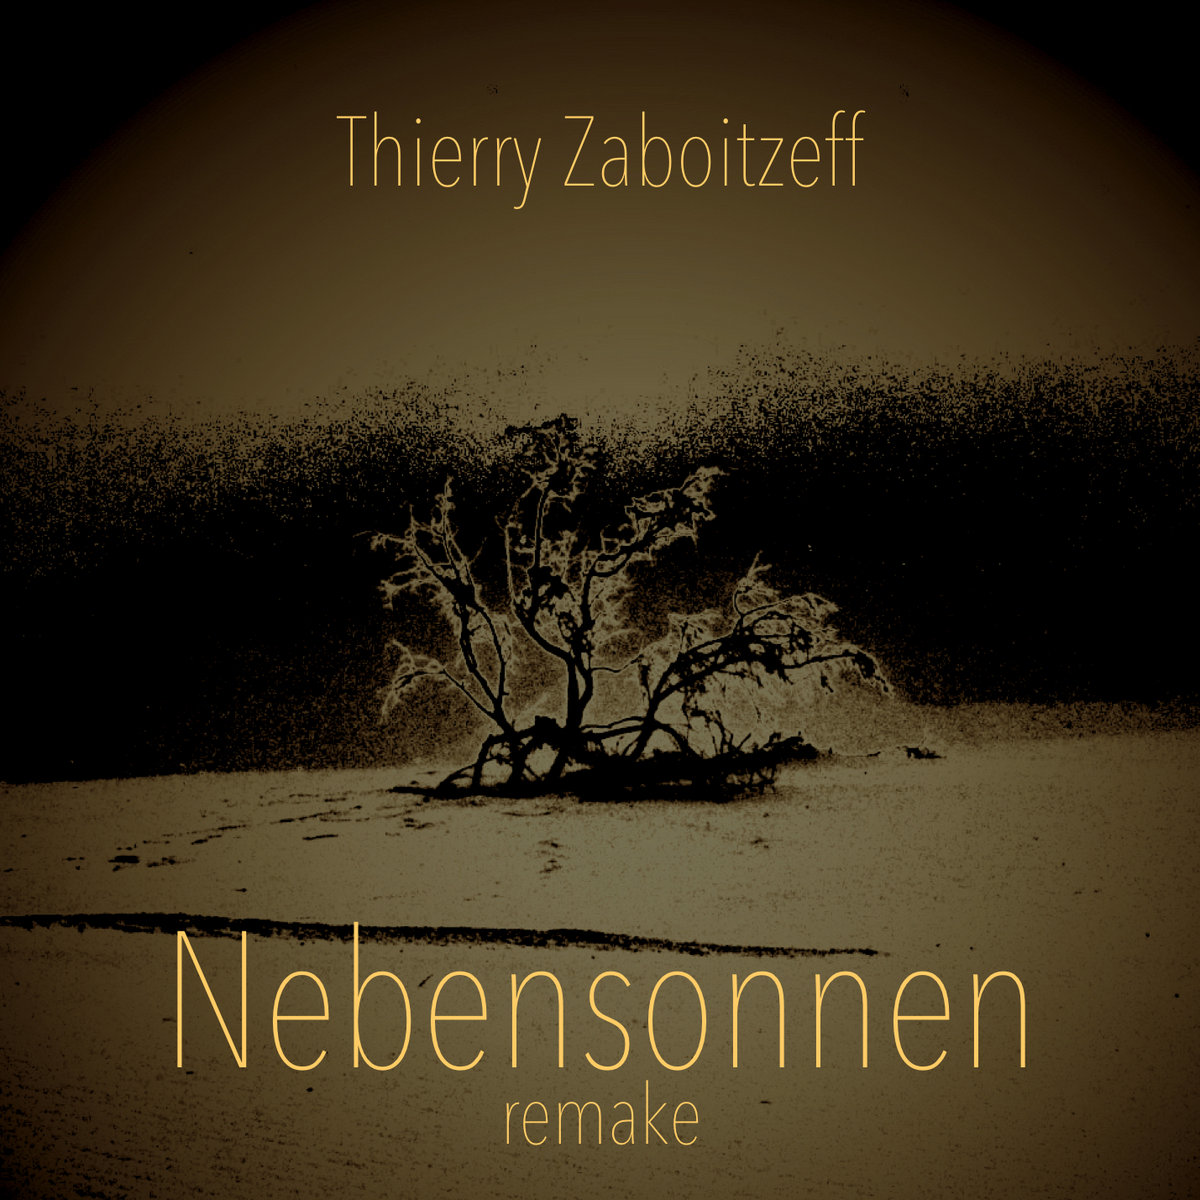 Nebensonnen (Remake) Cover art